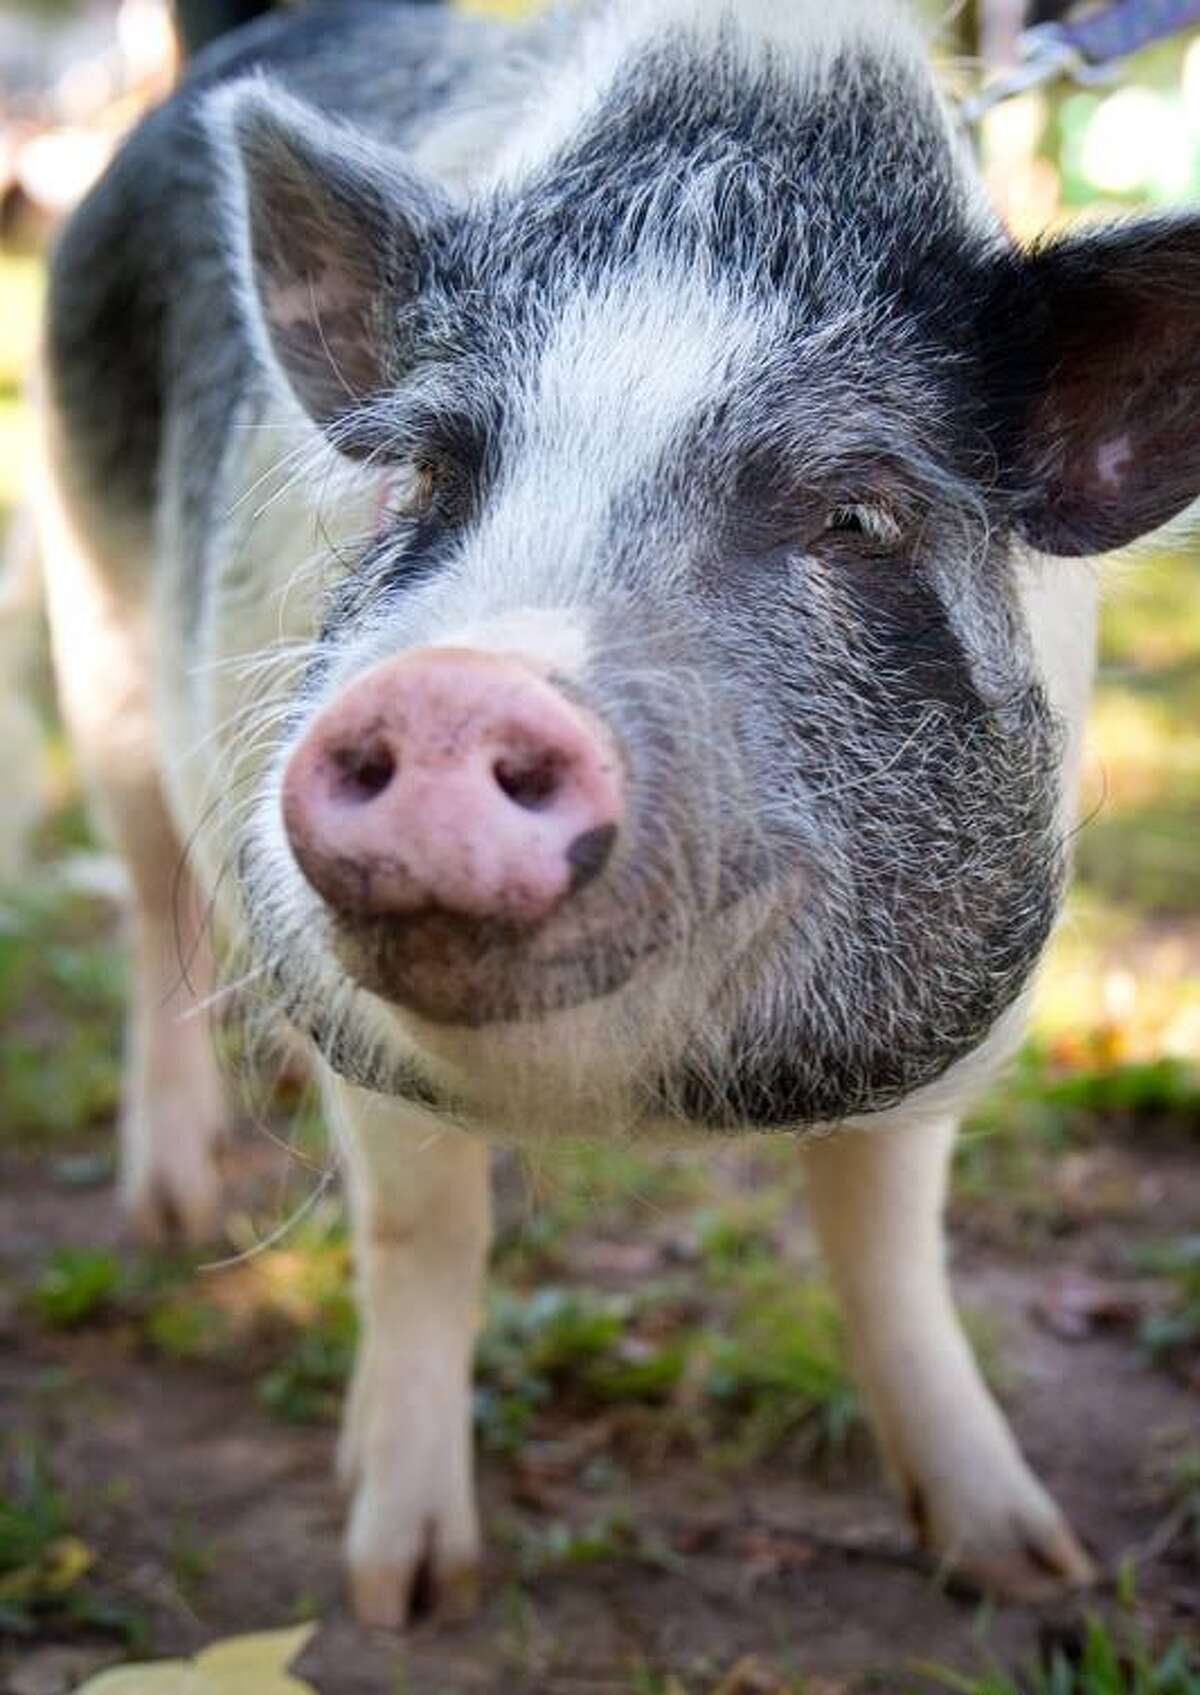 HearstConnecticut HR business partner, Kate Evans' Potbelly Pig named Penny is 3.5 years old and 90 lbs of mischief. Pigs are the 4th smartest animal and she has the cognitive ability of a 3 year old human.